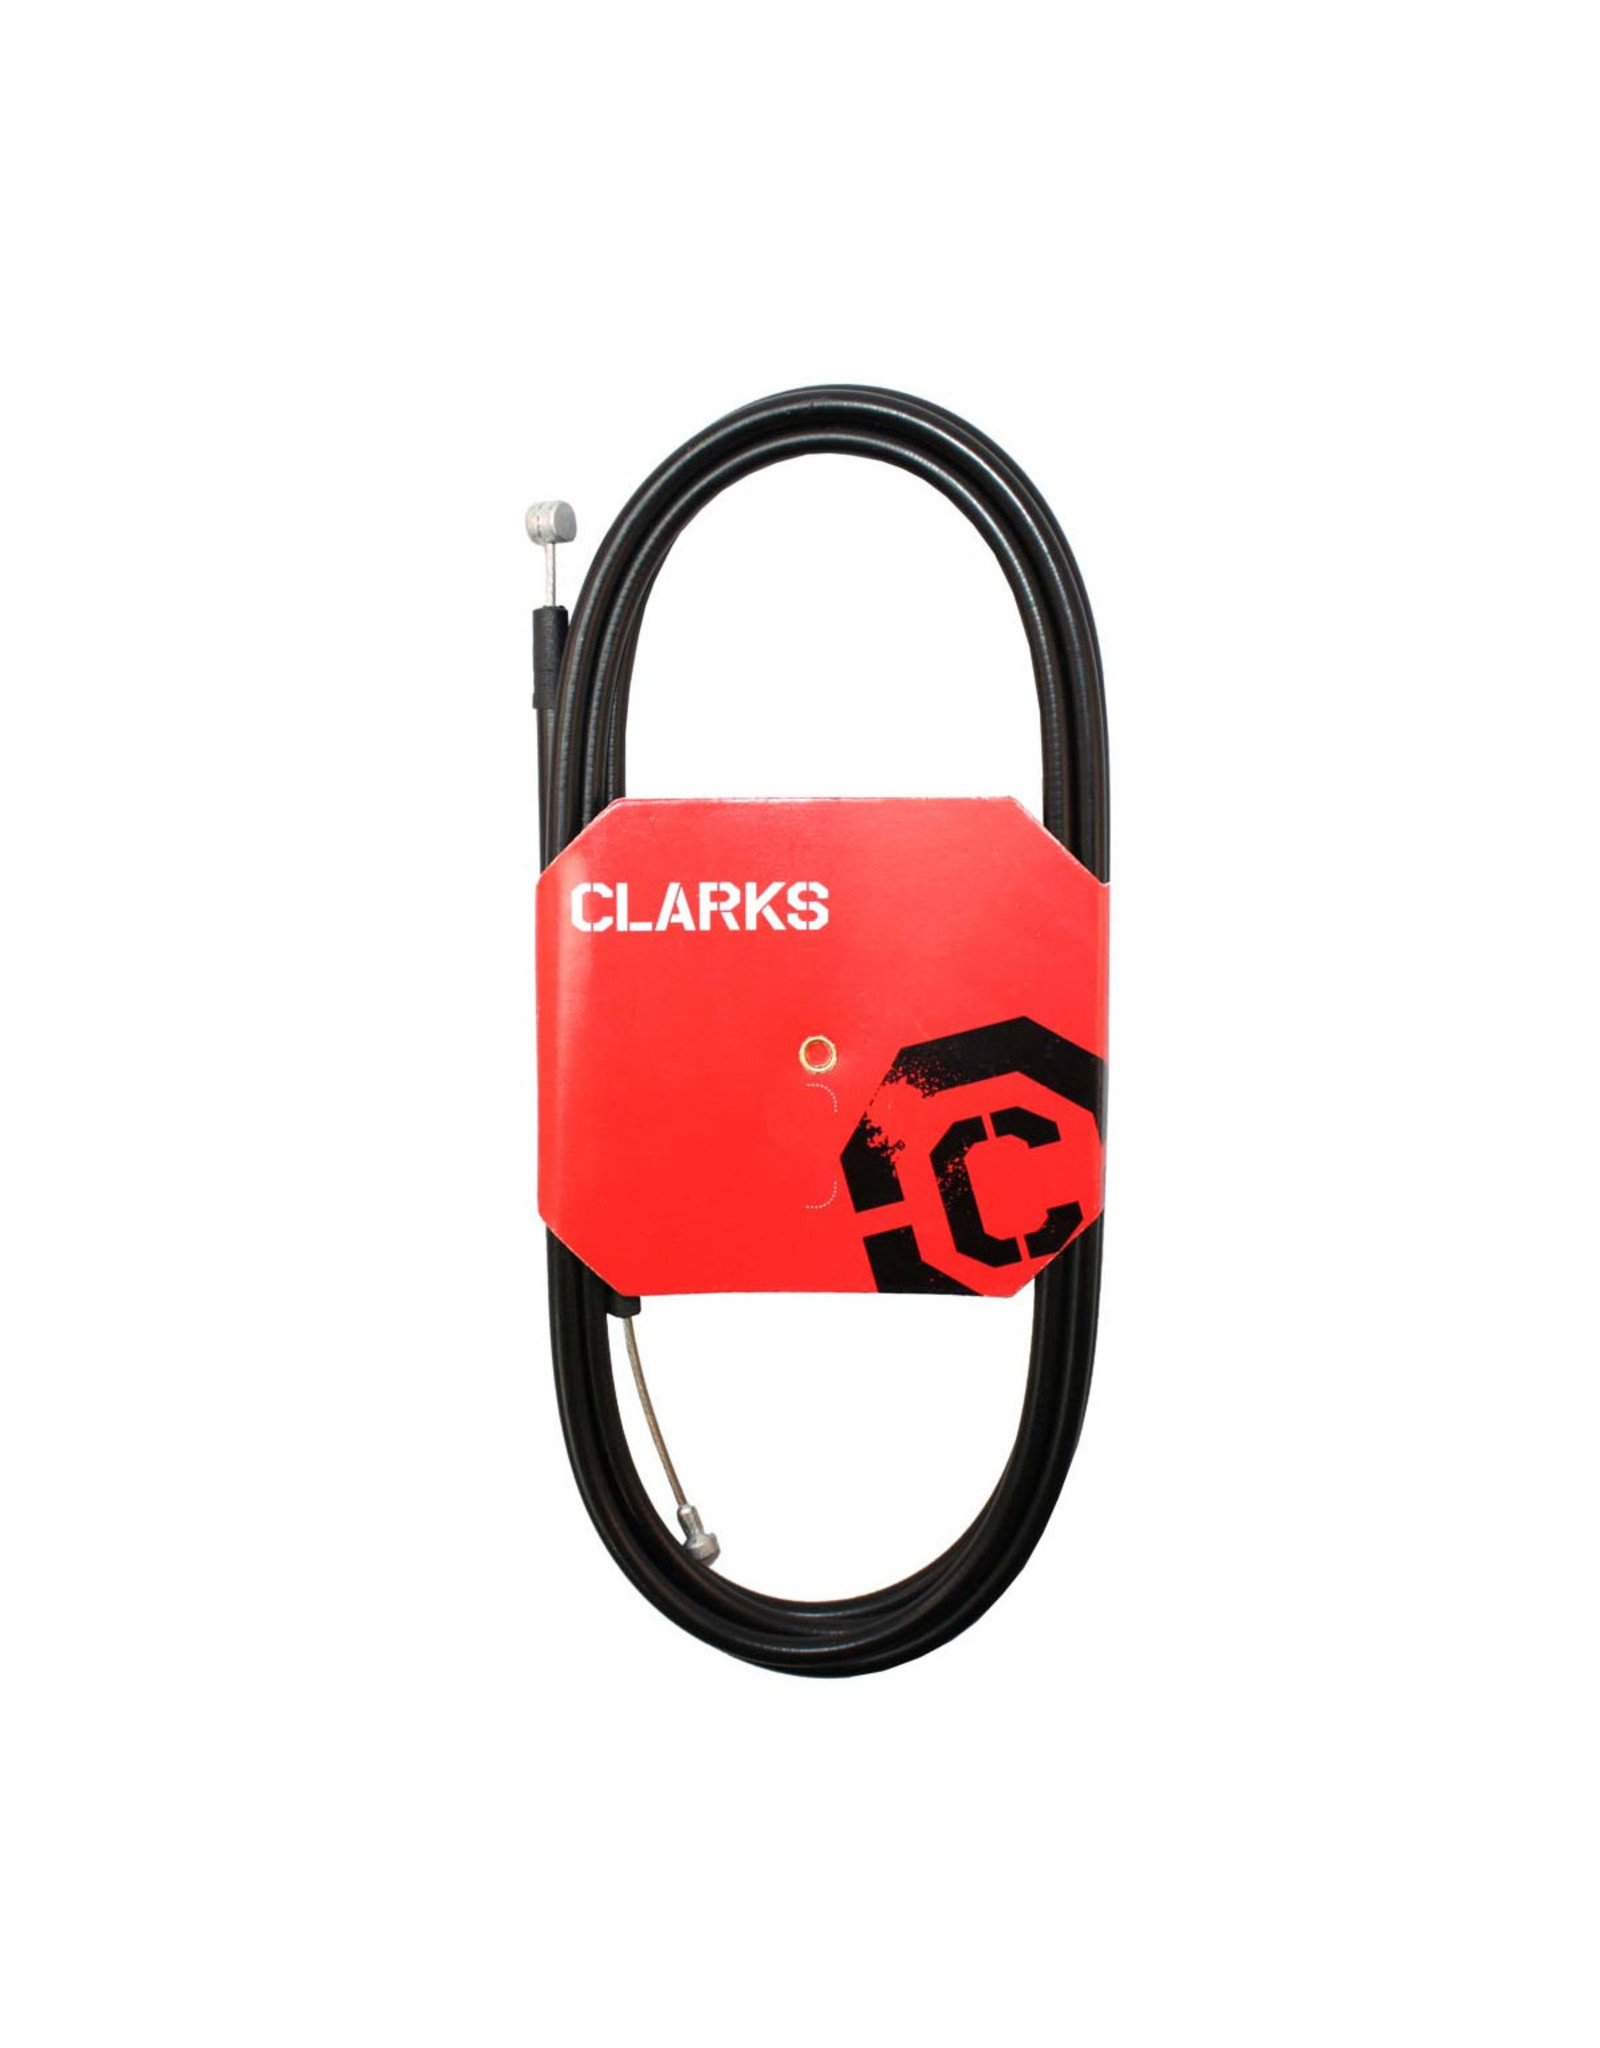 Clarks Brake Cable Inner & Housing Un